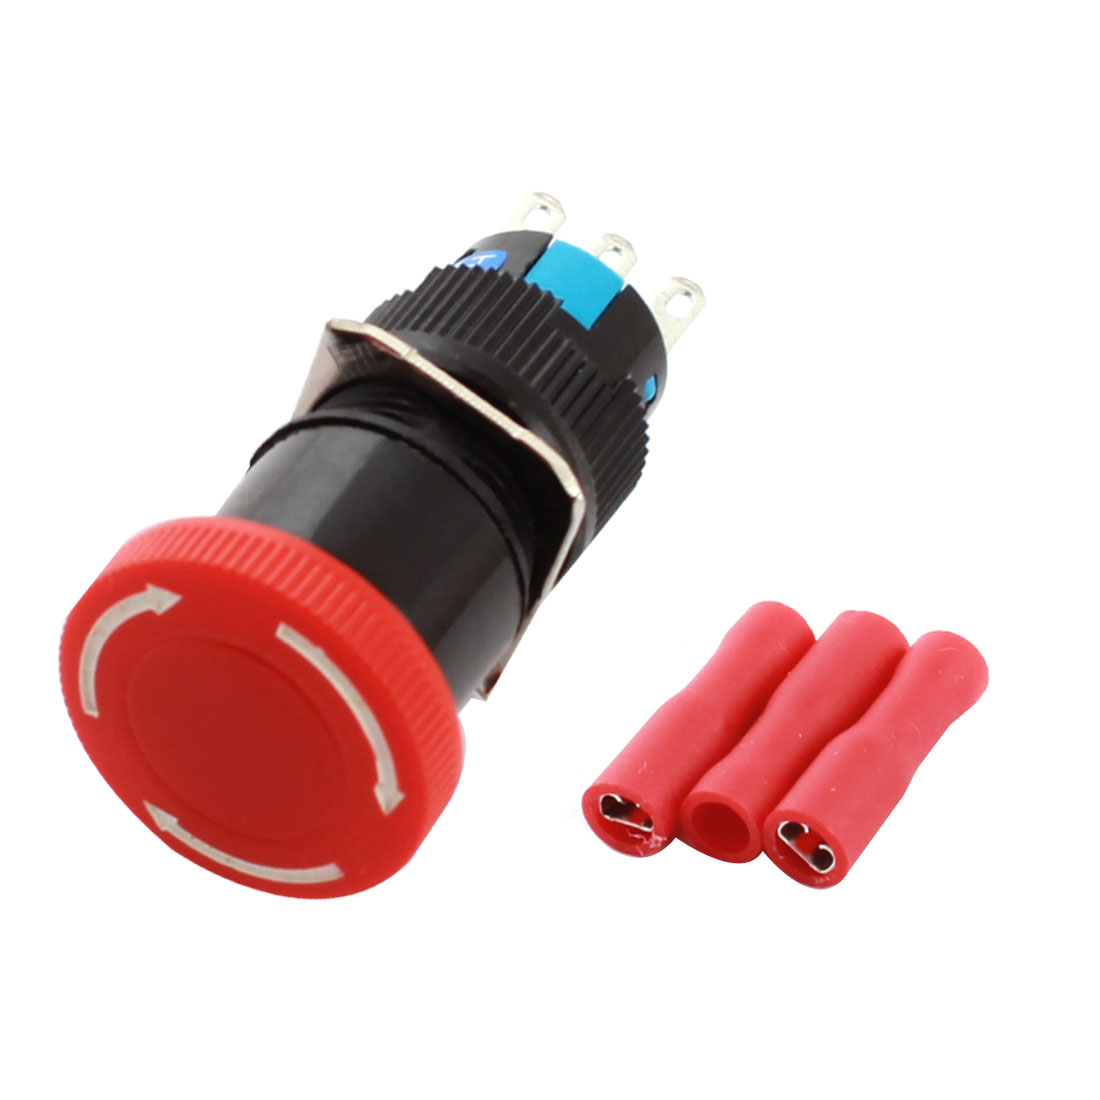 AC250V 3A 16mm Thread Panel Mount SPDT Mushroom Head Plastic Push Button Switch Red